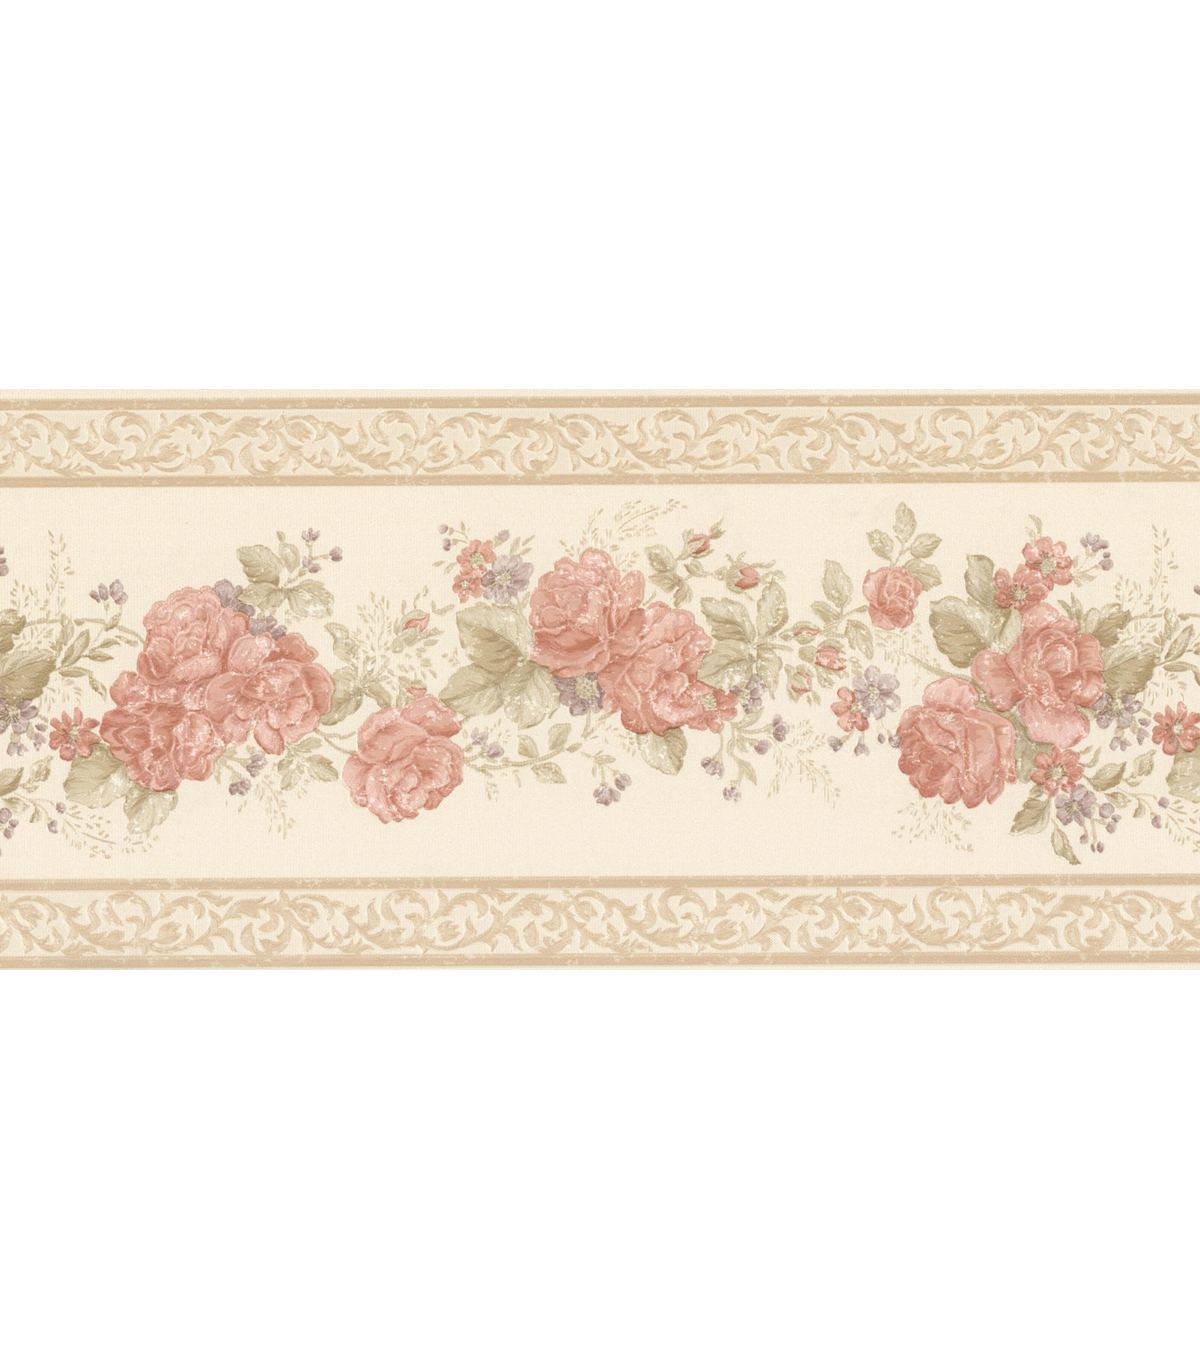 Tiff Peach Satin Floral Wallpaper Border